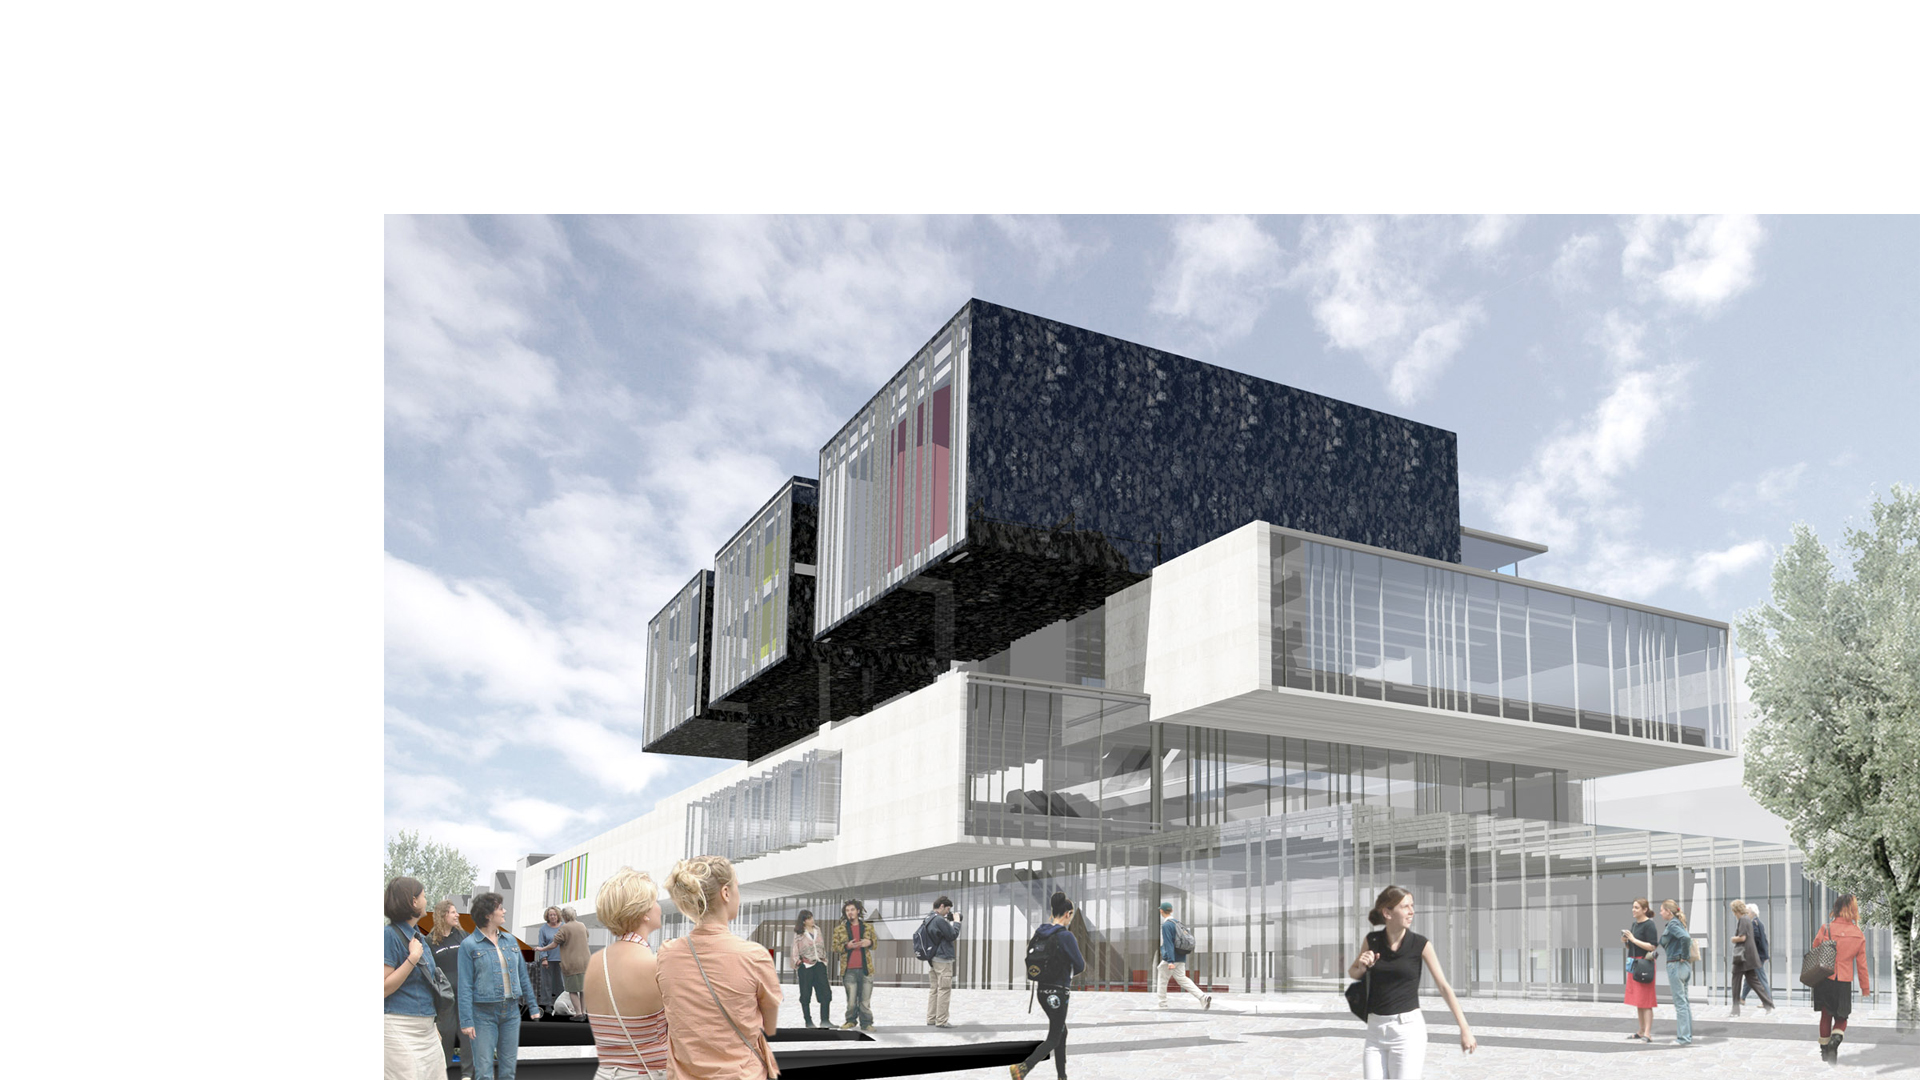 3D composite render of the main entrance and building form for the Helsinki Central Library